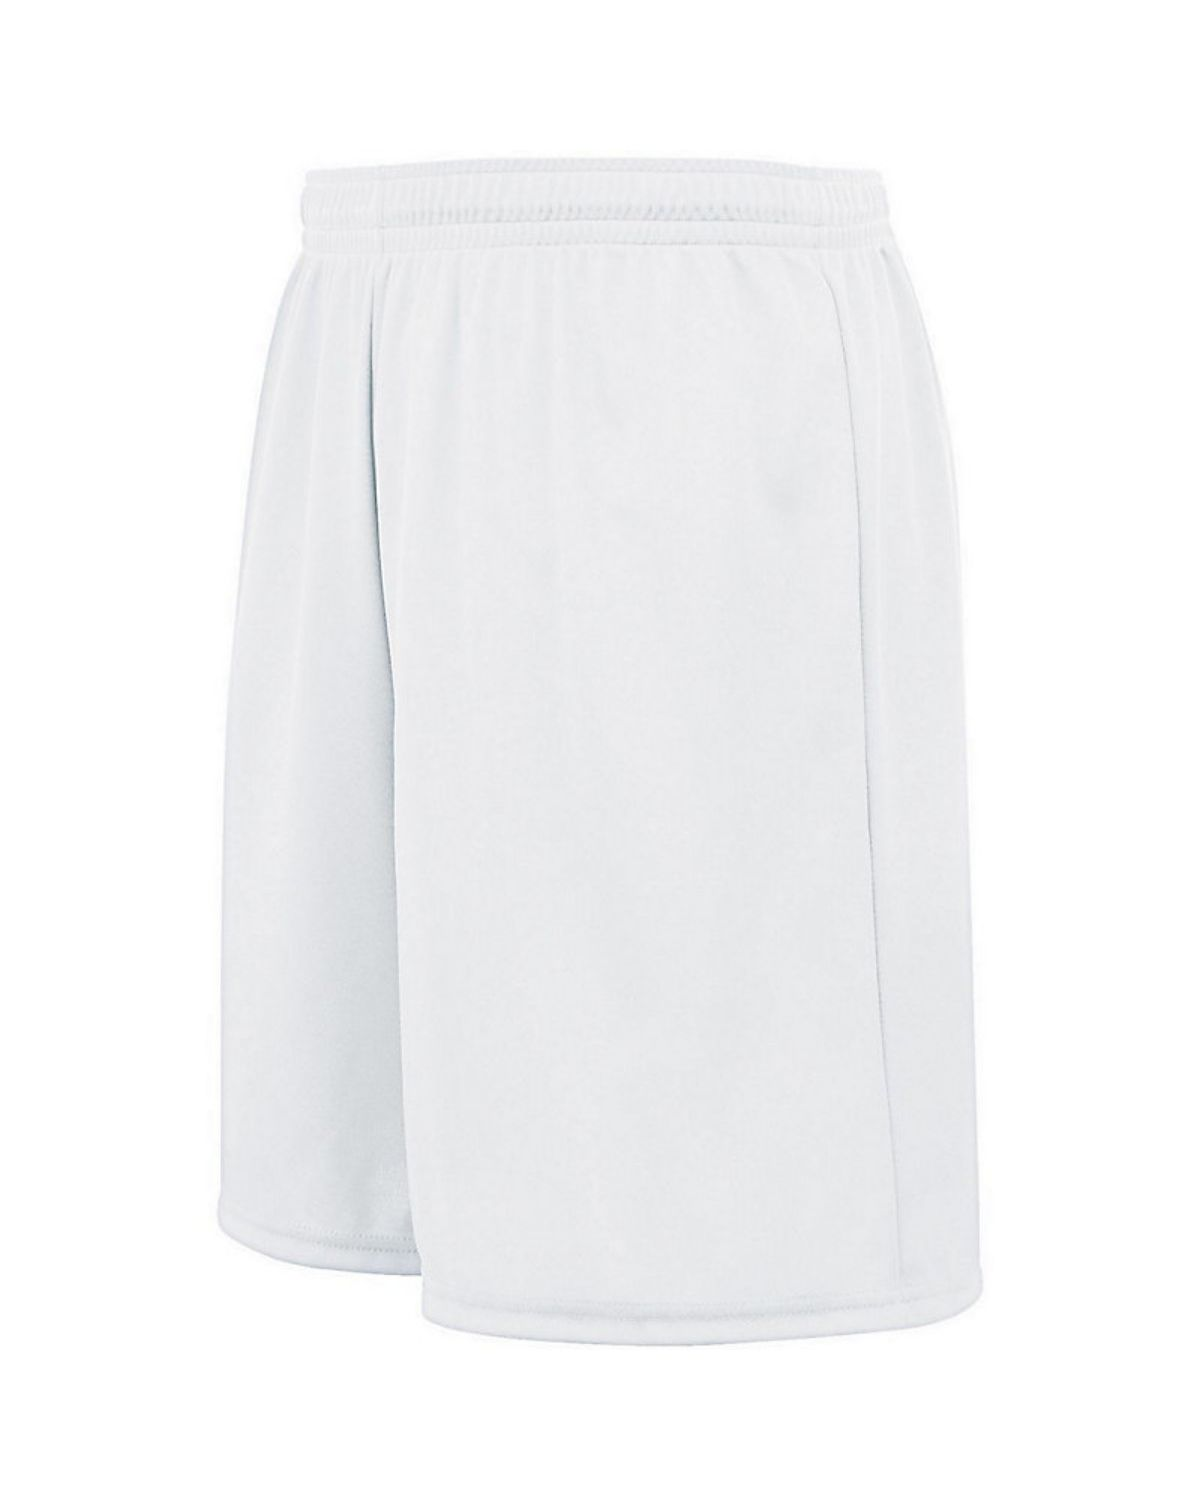 'HIGH 5 325391 Youth Primo Short'